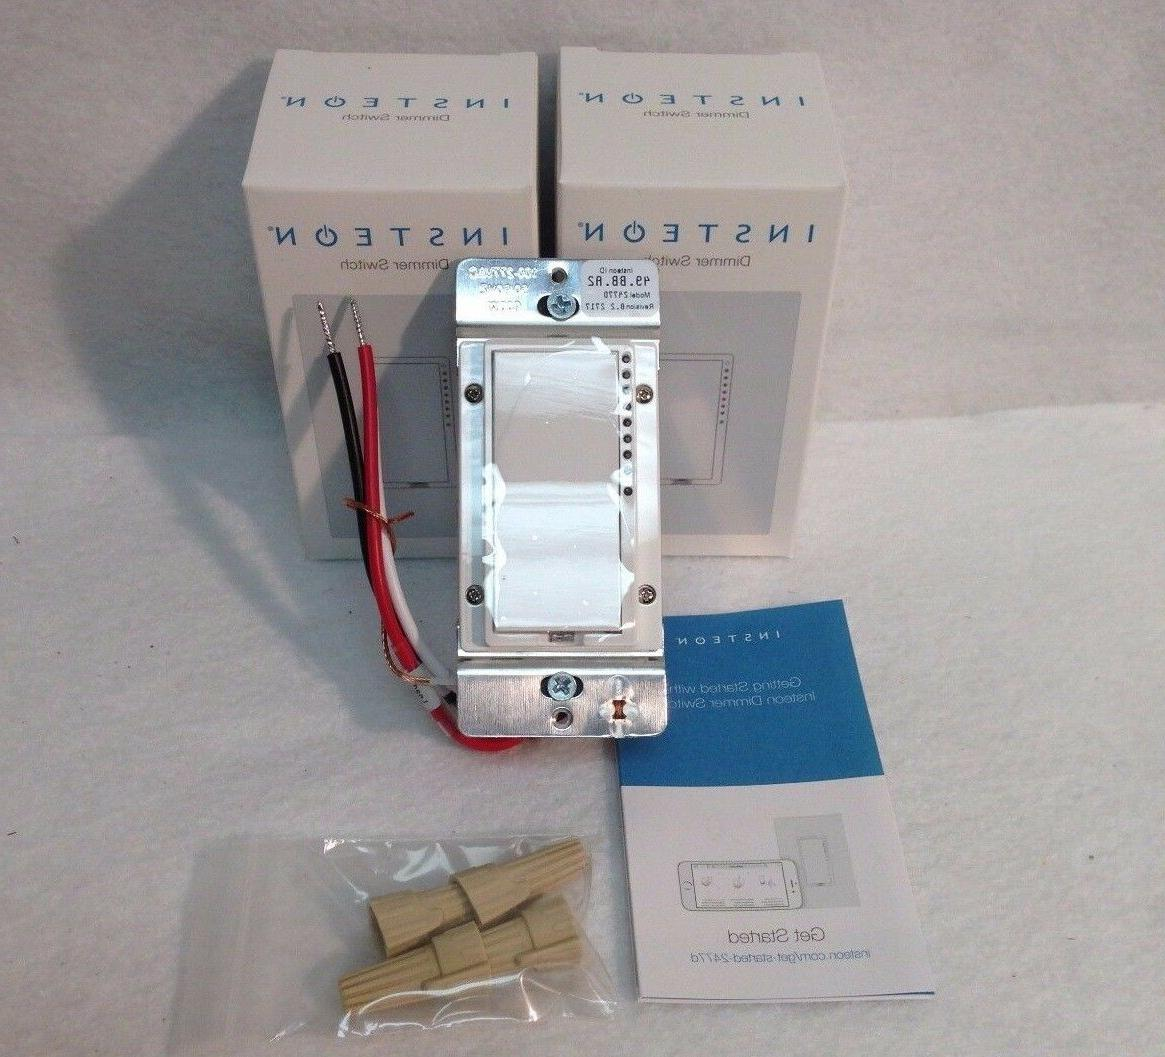 new 2 2477d switchlinc dimmer switches 600w